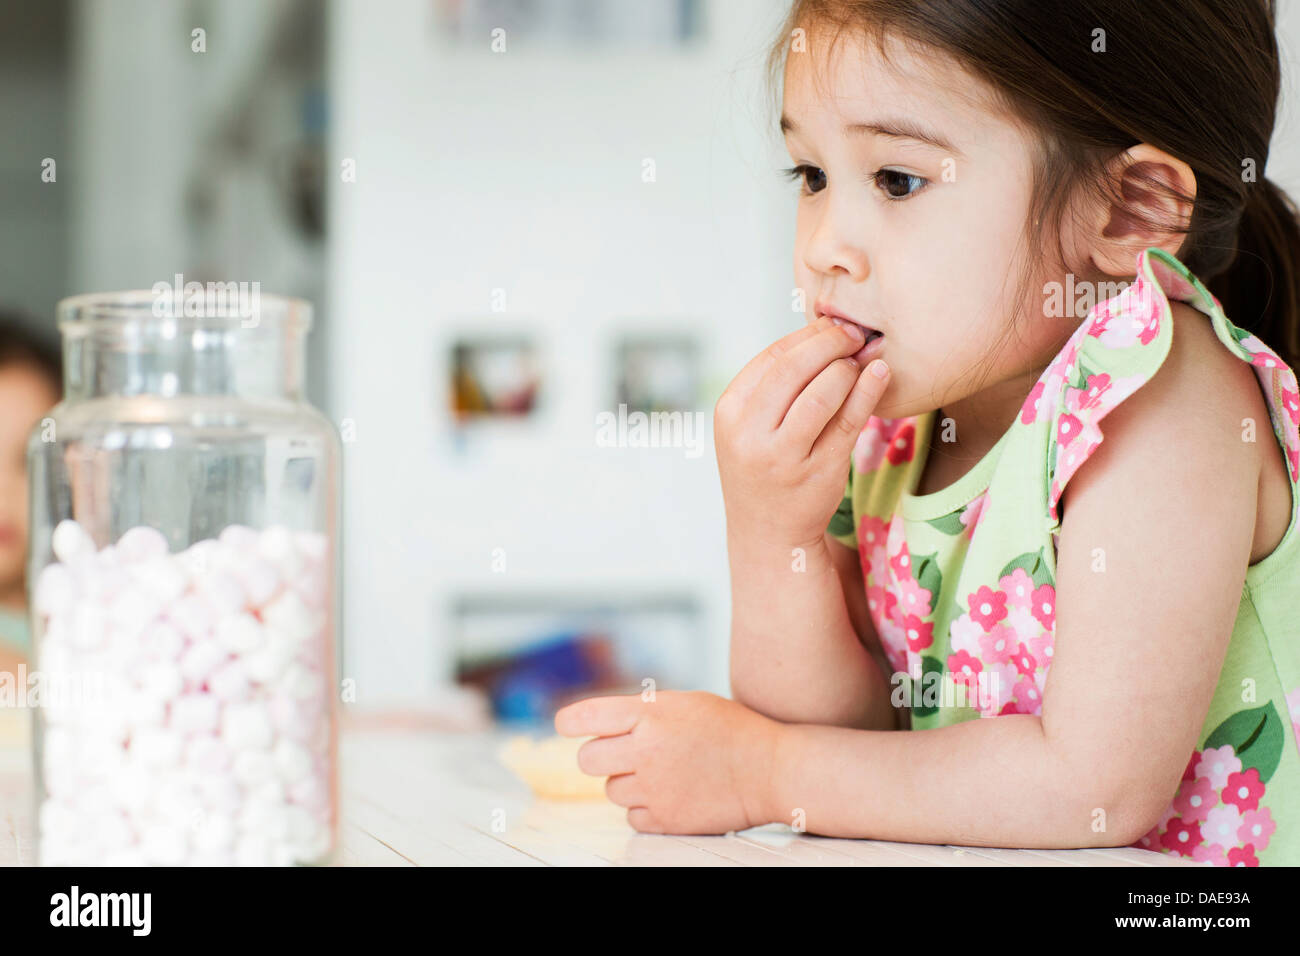 Close up of young girl tasting marshmallows - Stock Image